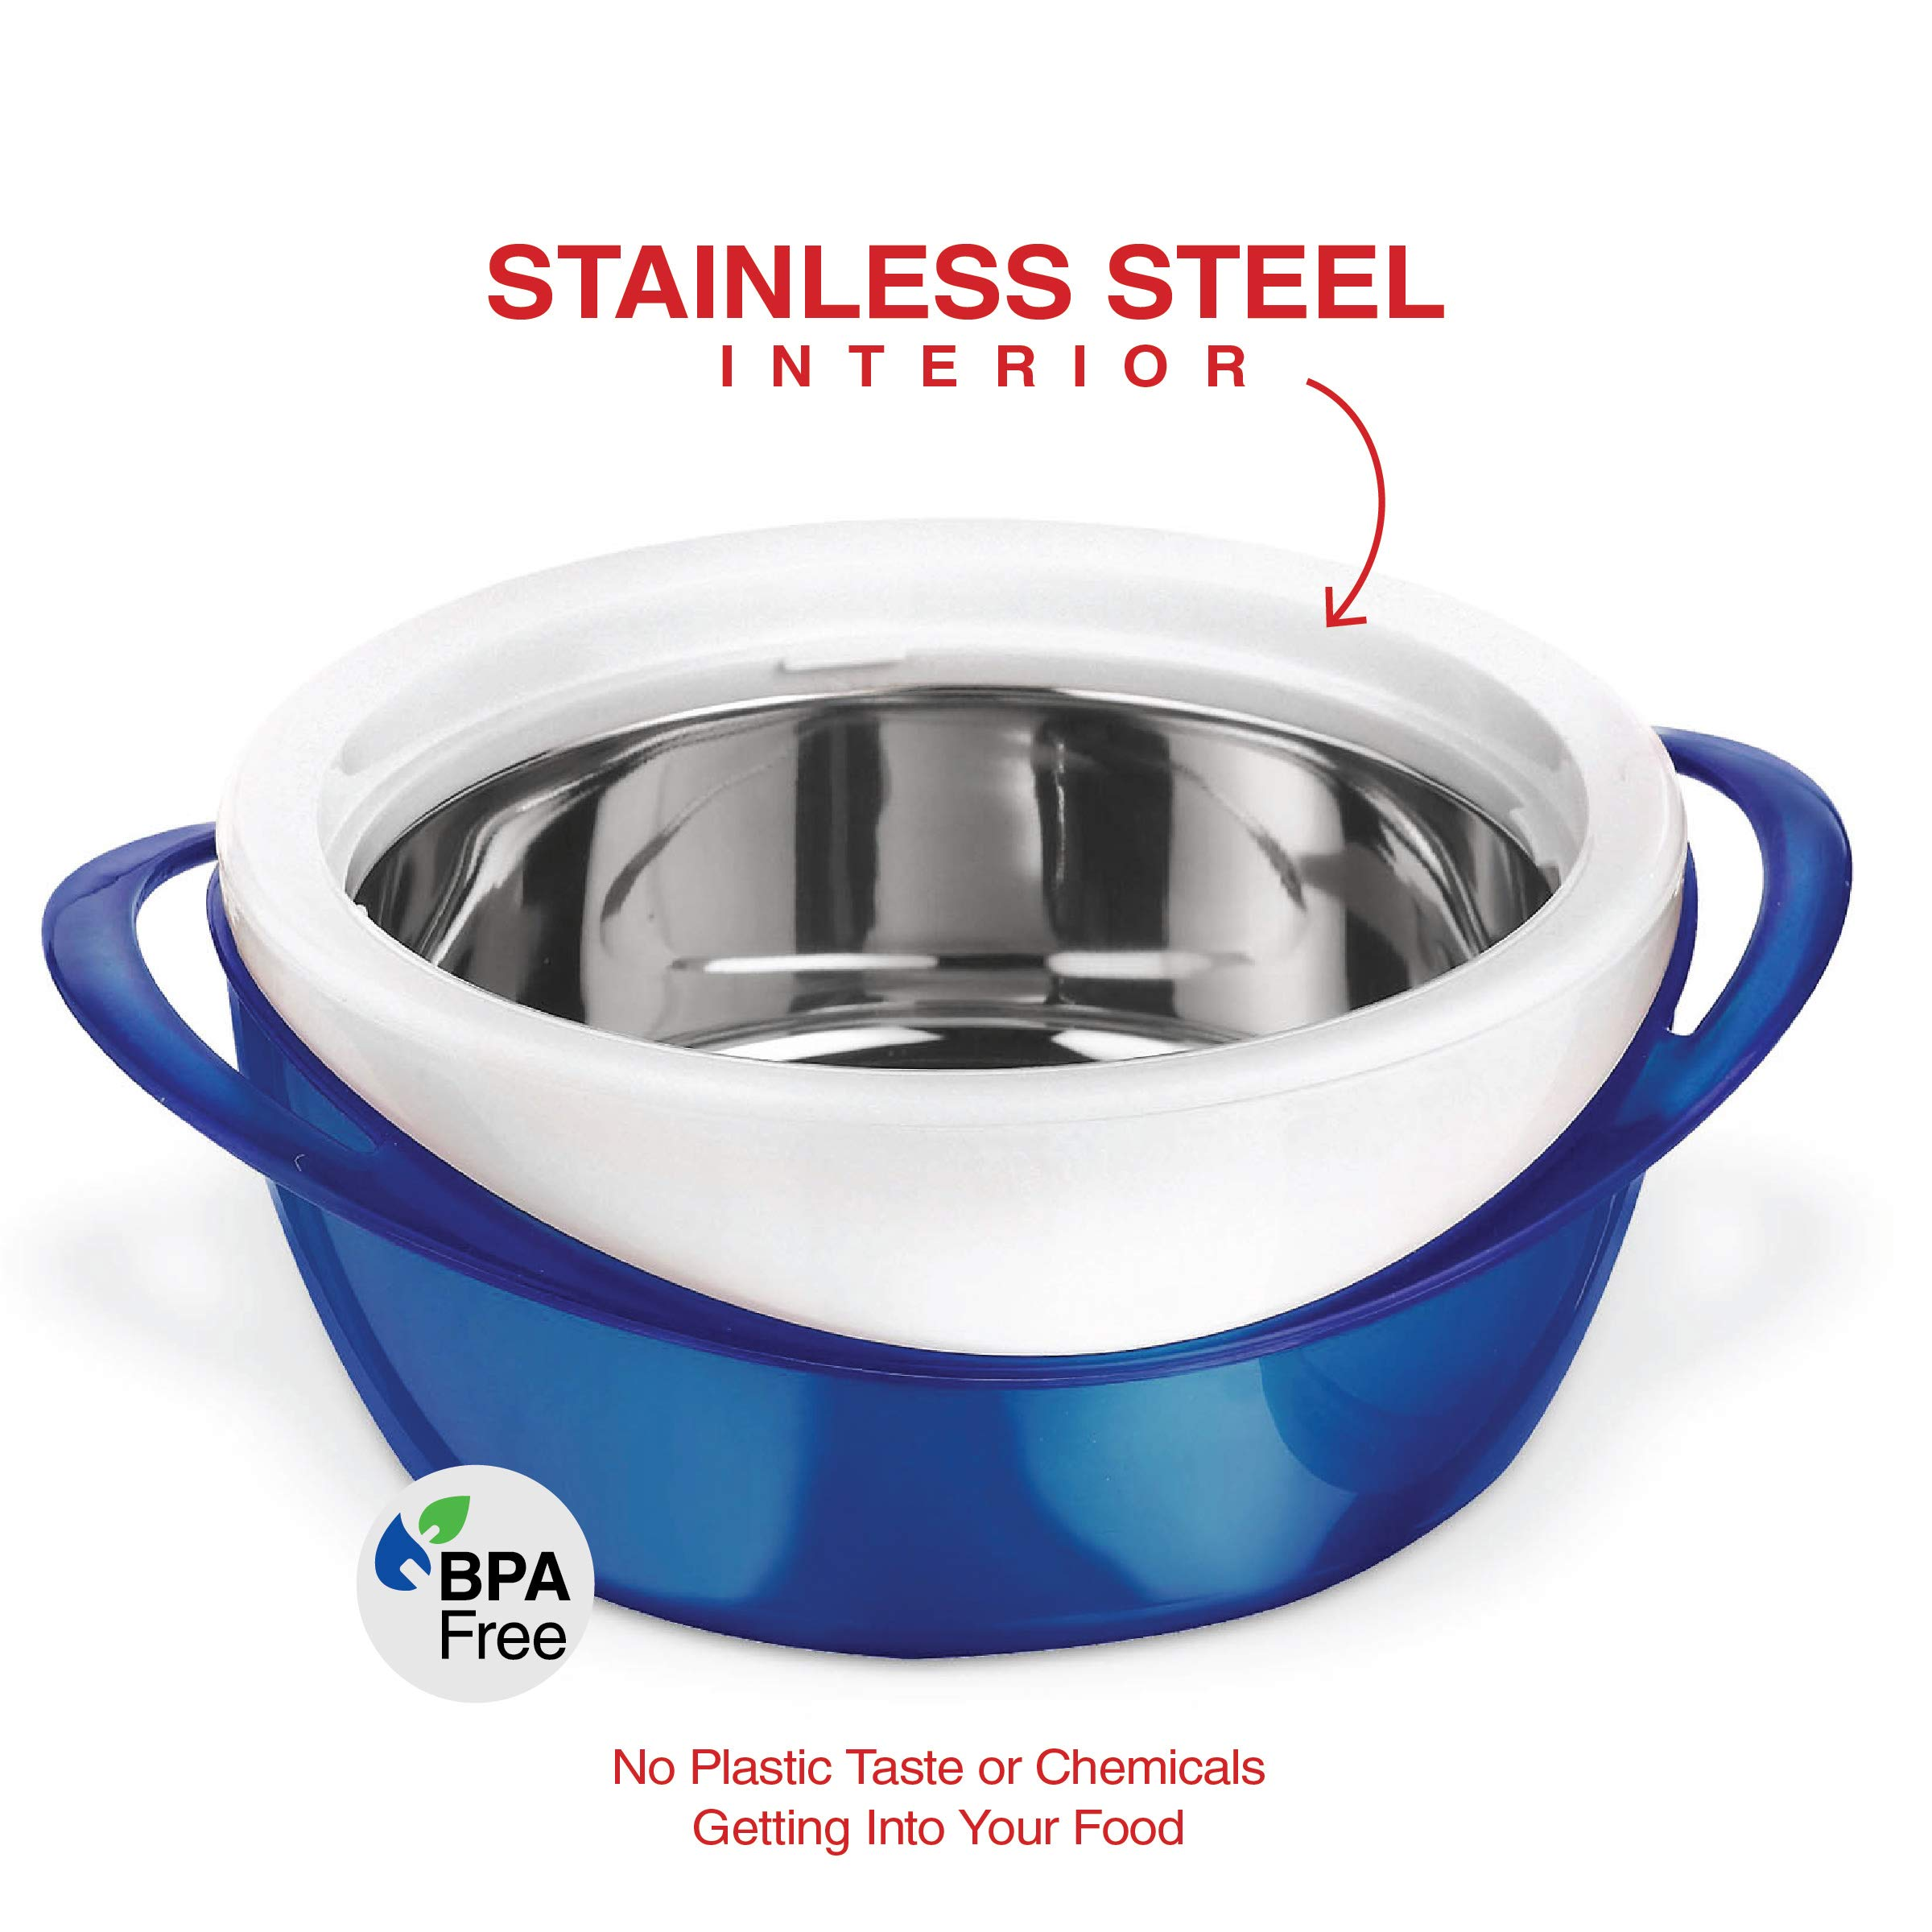 Pinnacle Casserole Dish - Large Soup and Salad Bowl - Insulated Serving Bowl With Lid (3.6 qt, Blue) by Pinnacle Thermoware (Image #3)